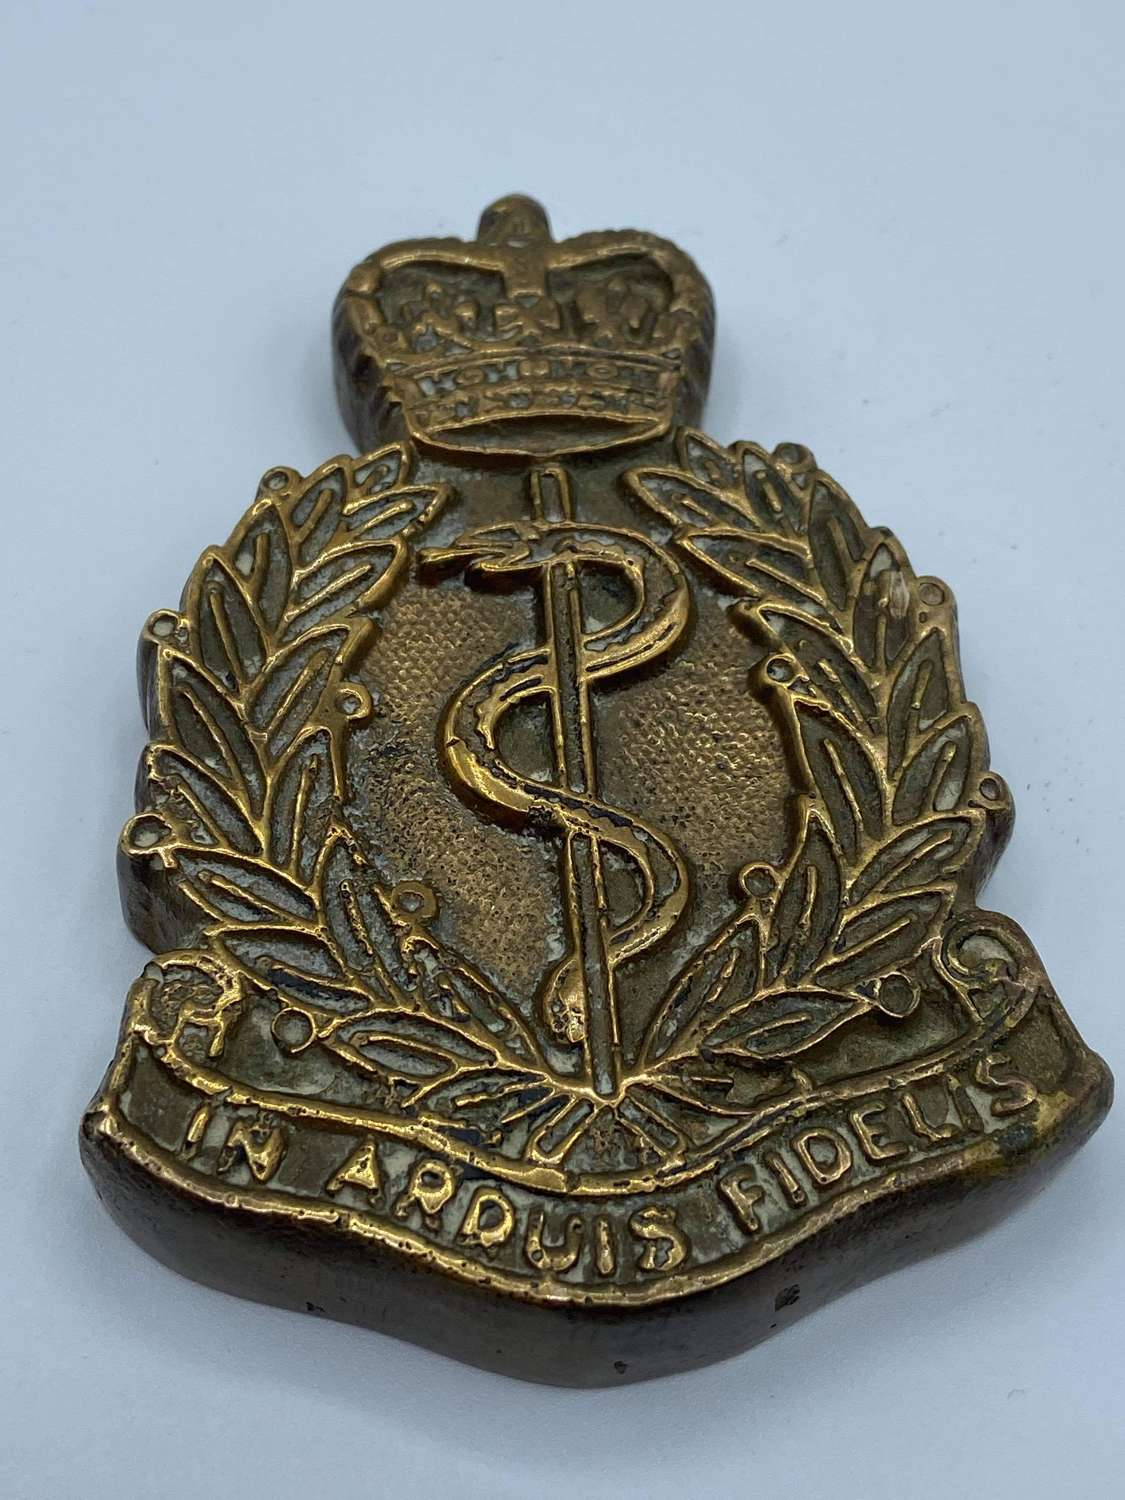 1940s To 50s Brass Royal Army Medical Corps RAMC Reg Paperweight